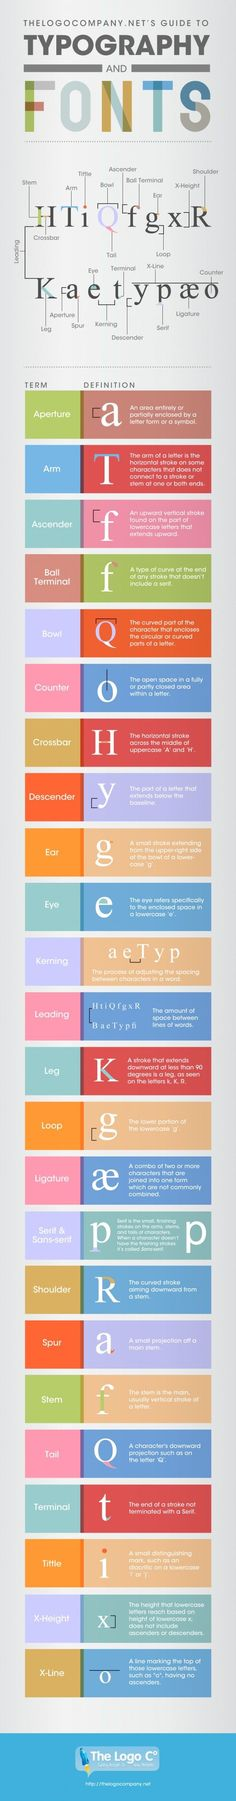 Here's a guide to typography and fonts. Get up to speed or refresh your knowledge of type terms.